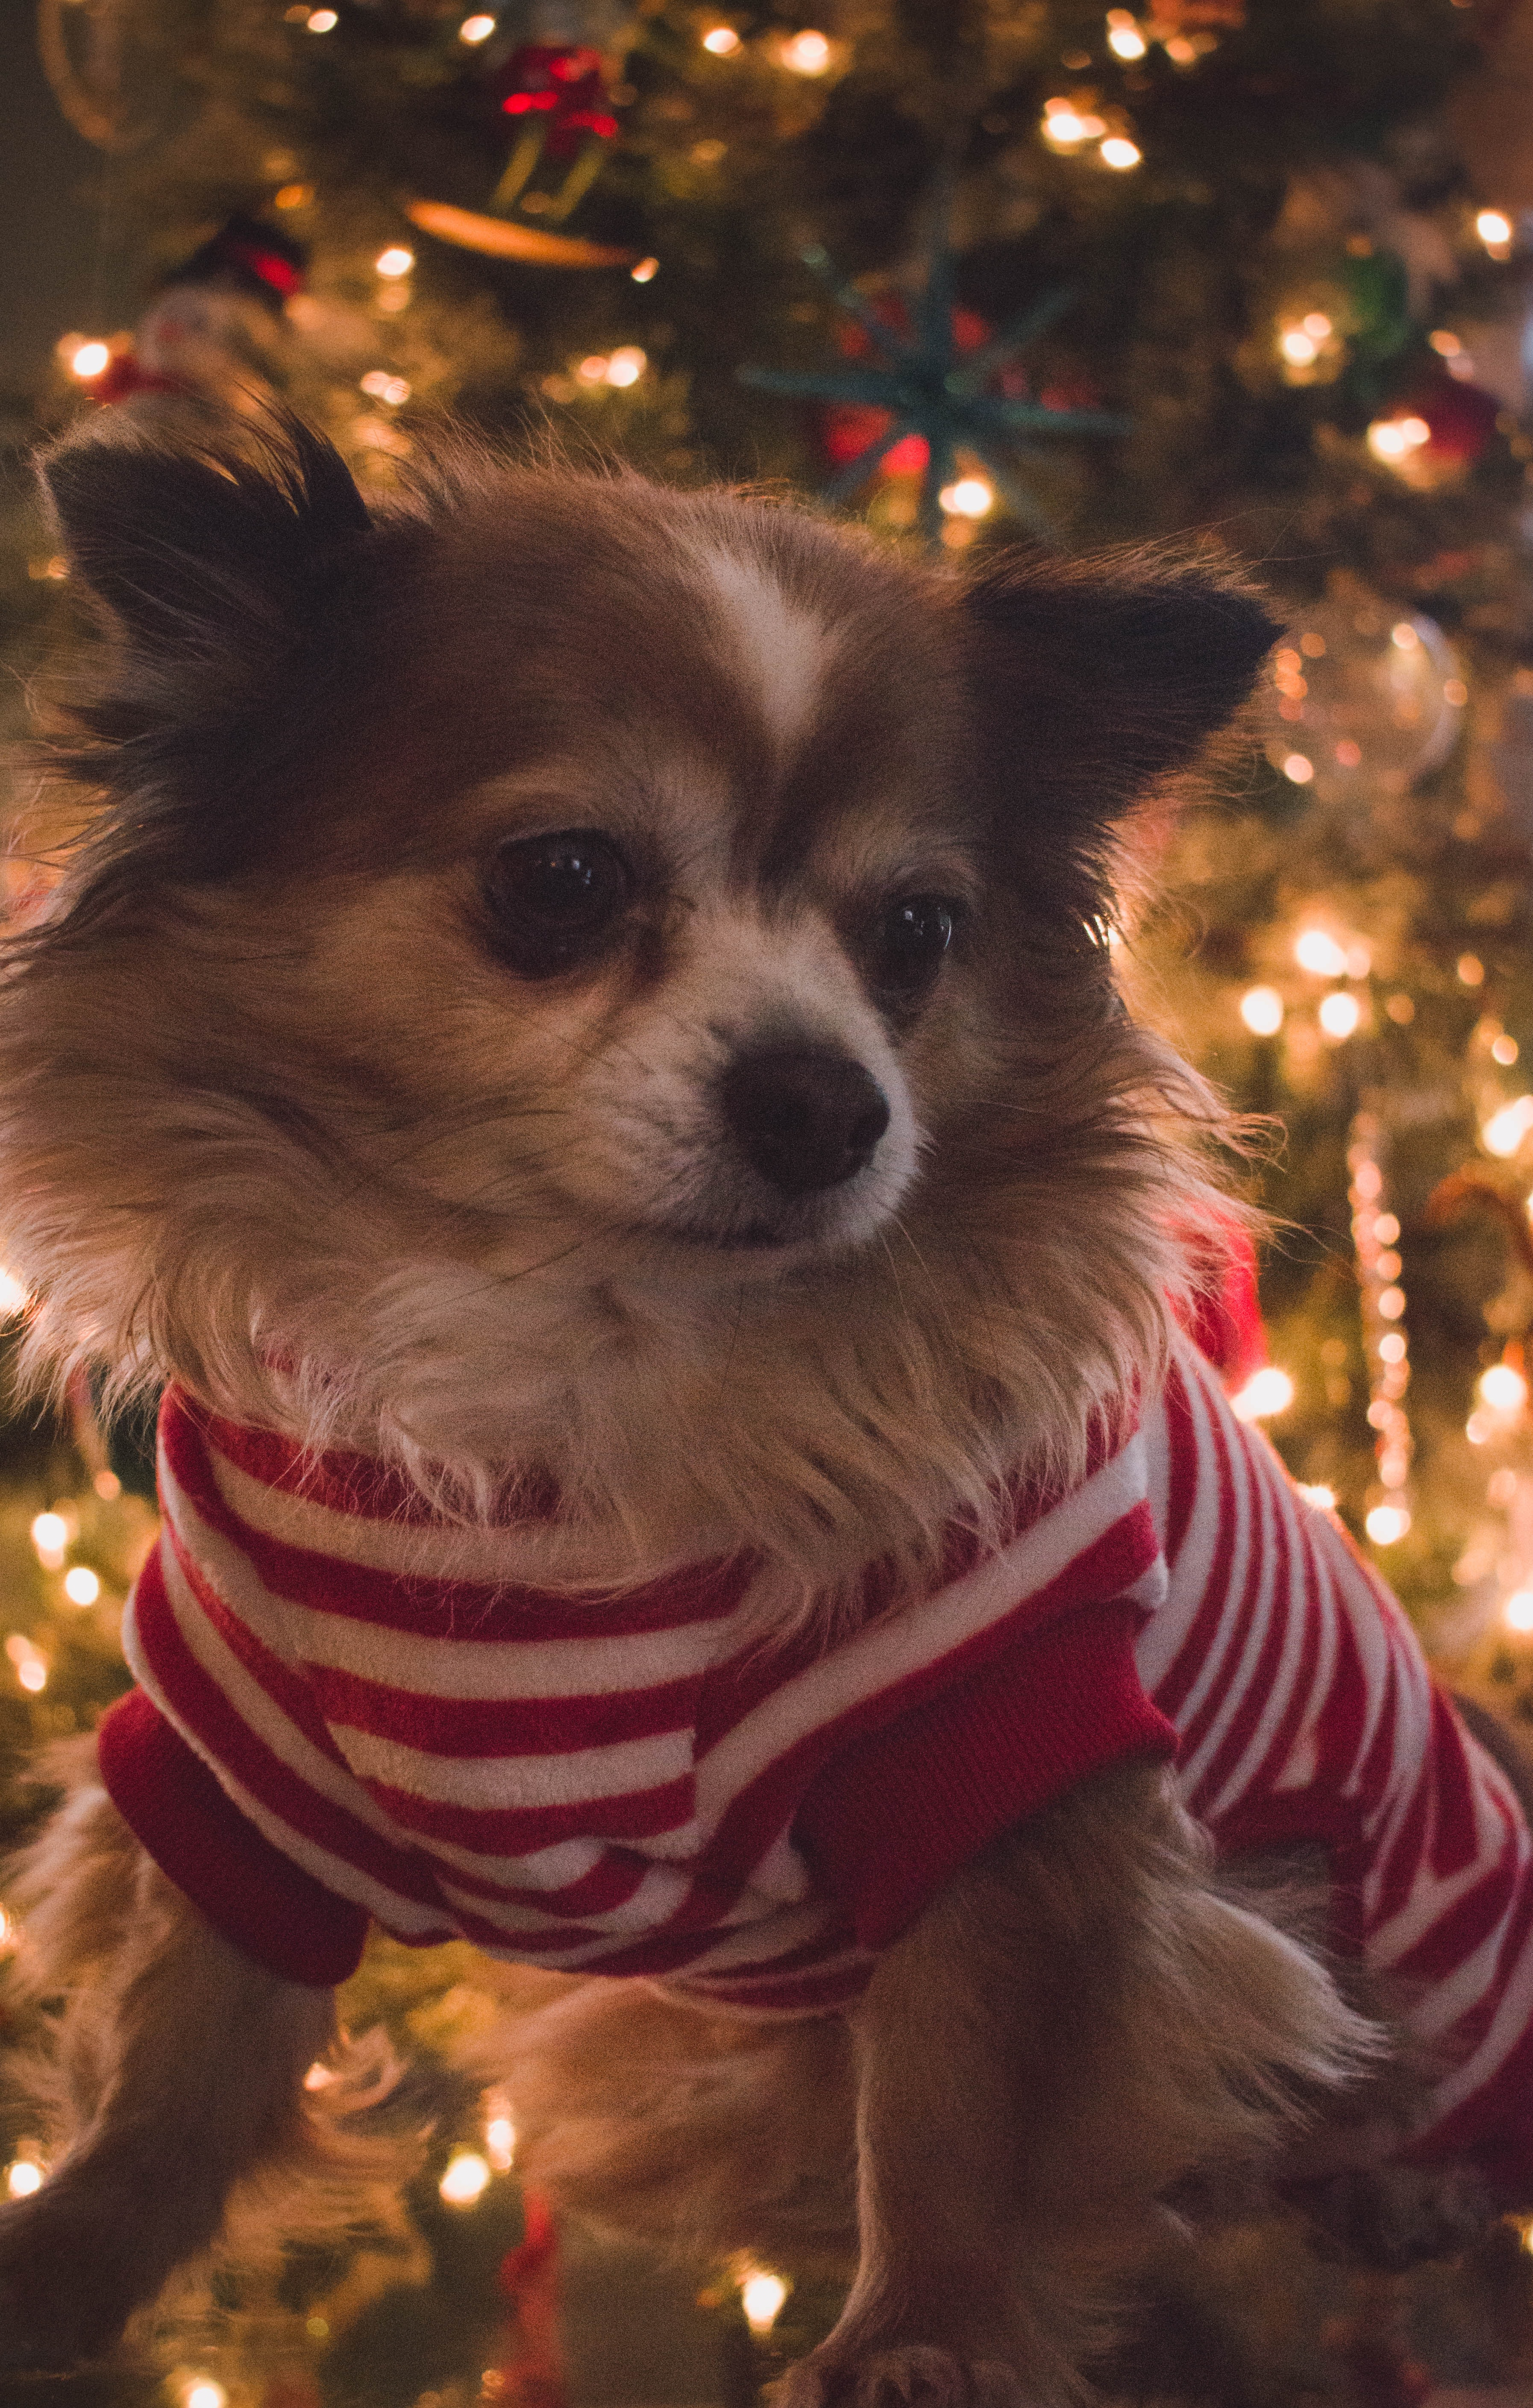 brown and white long coat small dog with red and white striped shirt